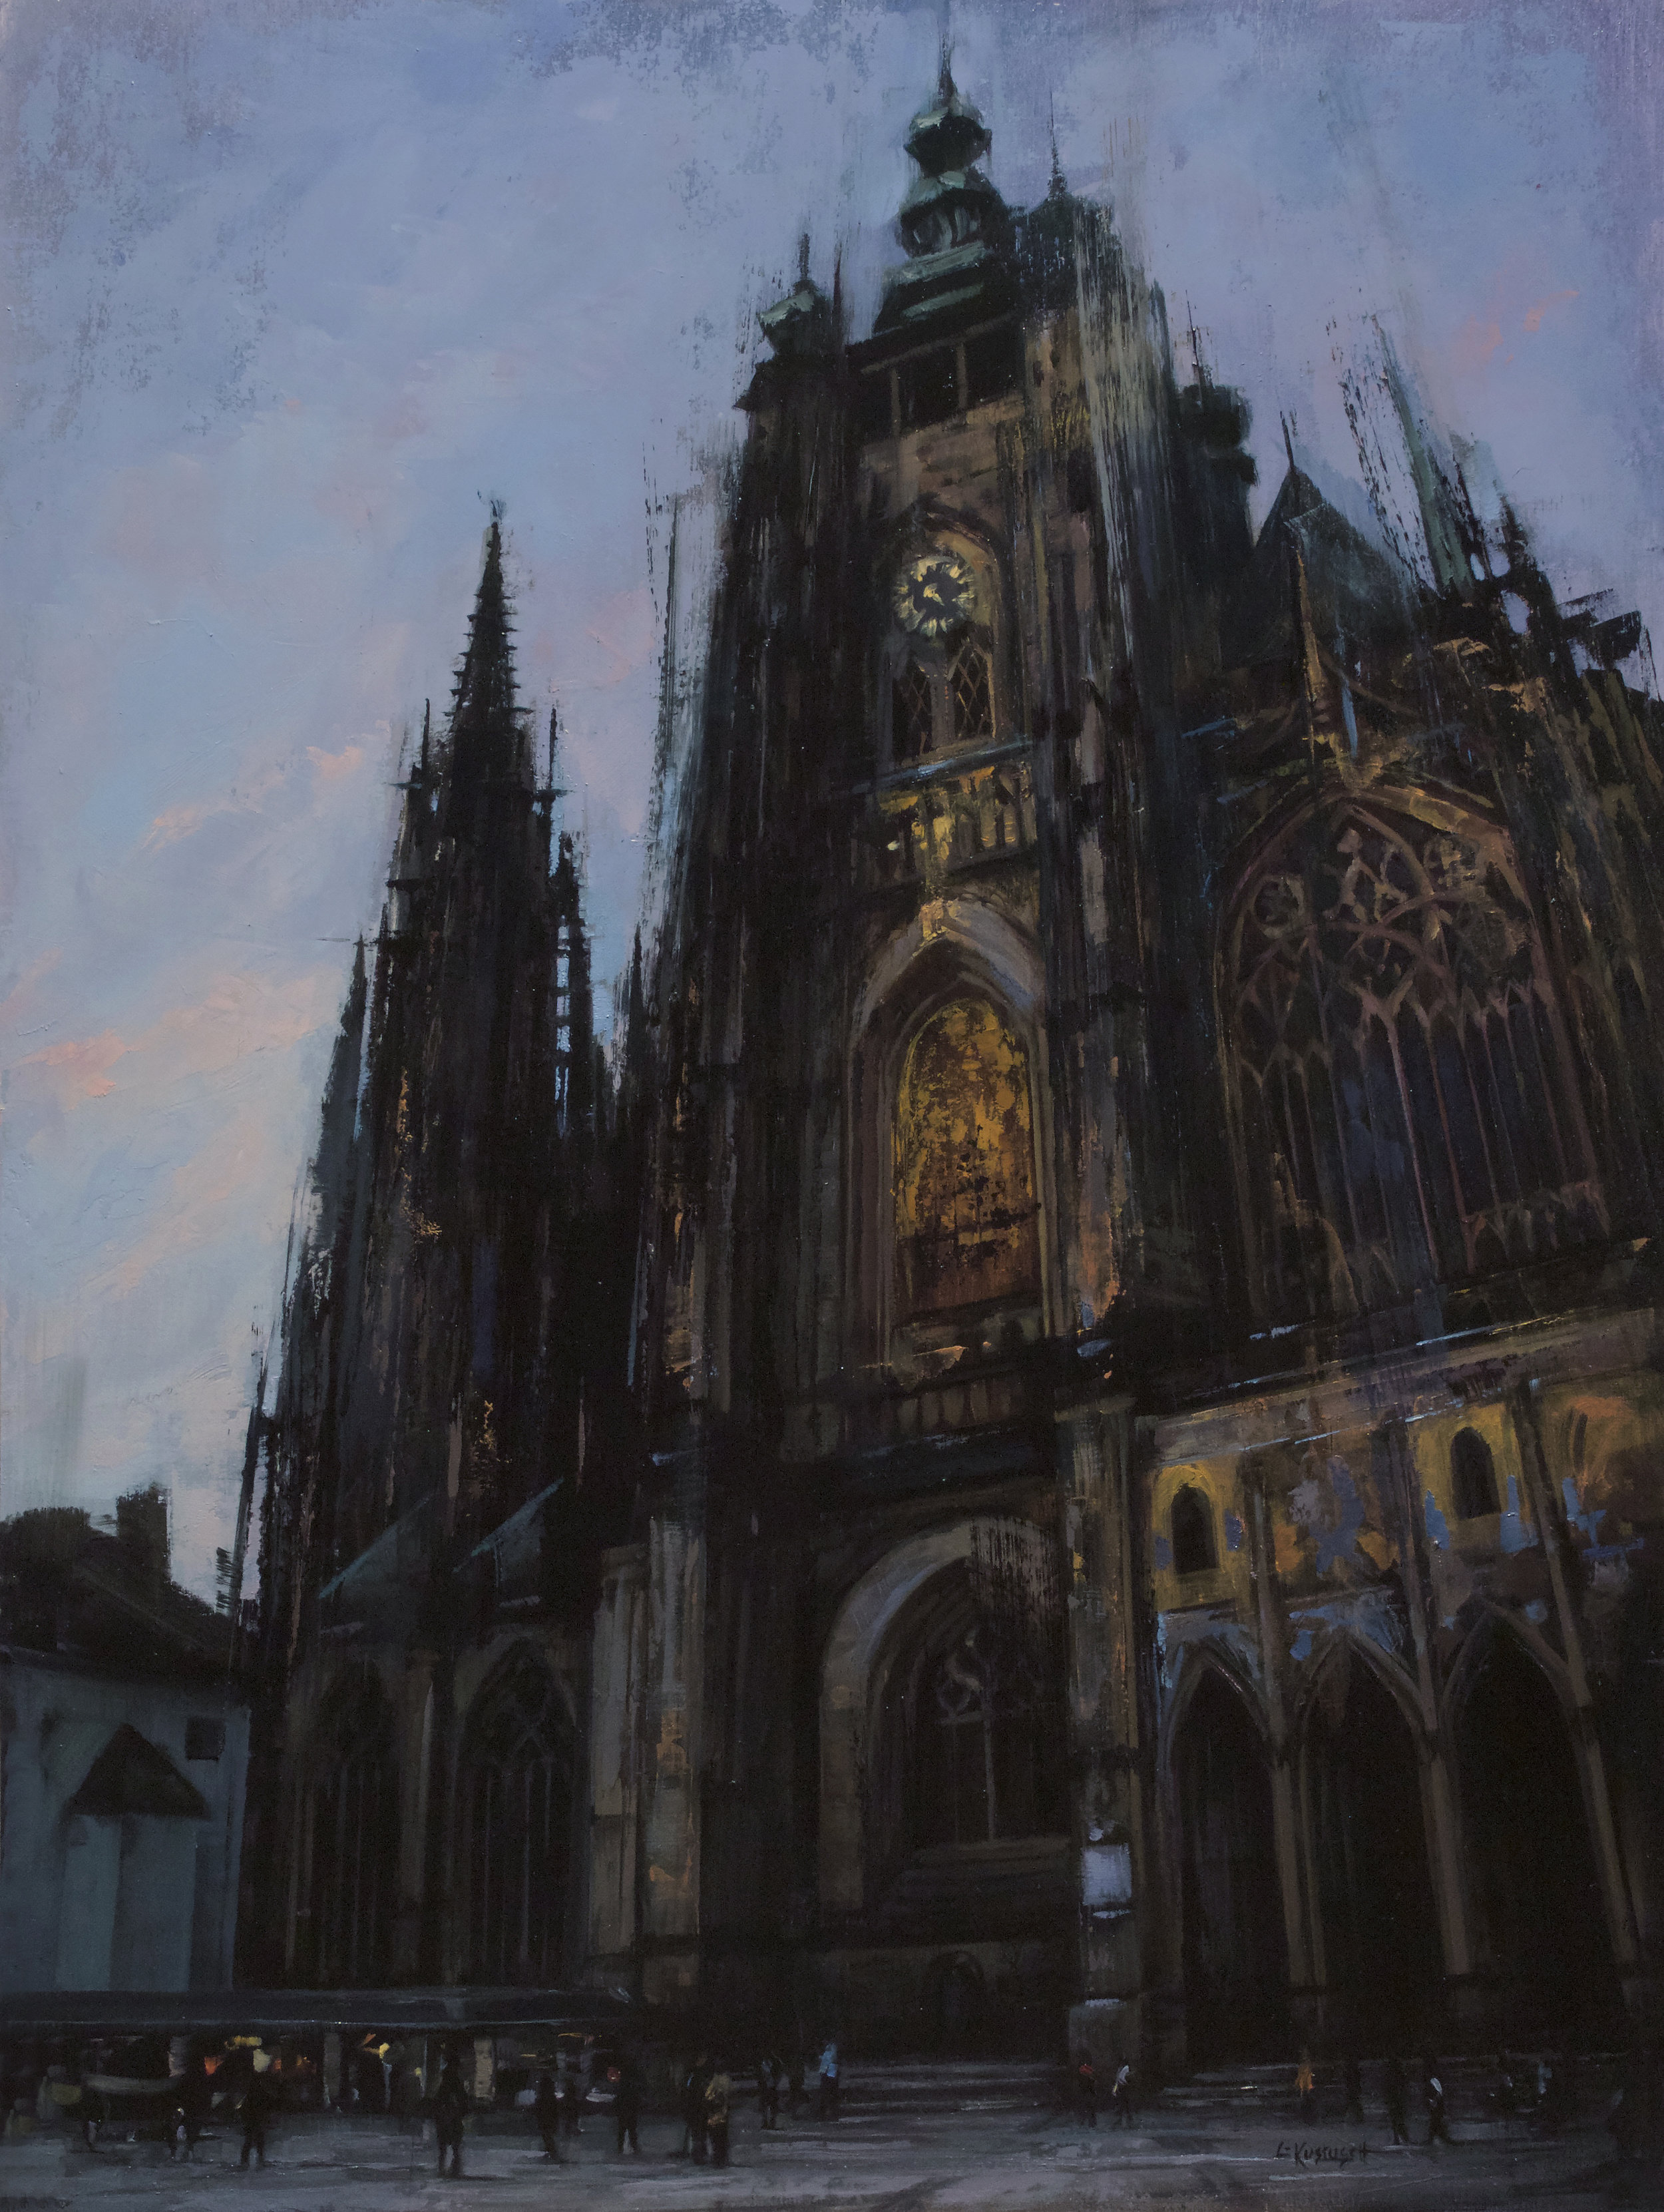 The Spires of St. Vitus